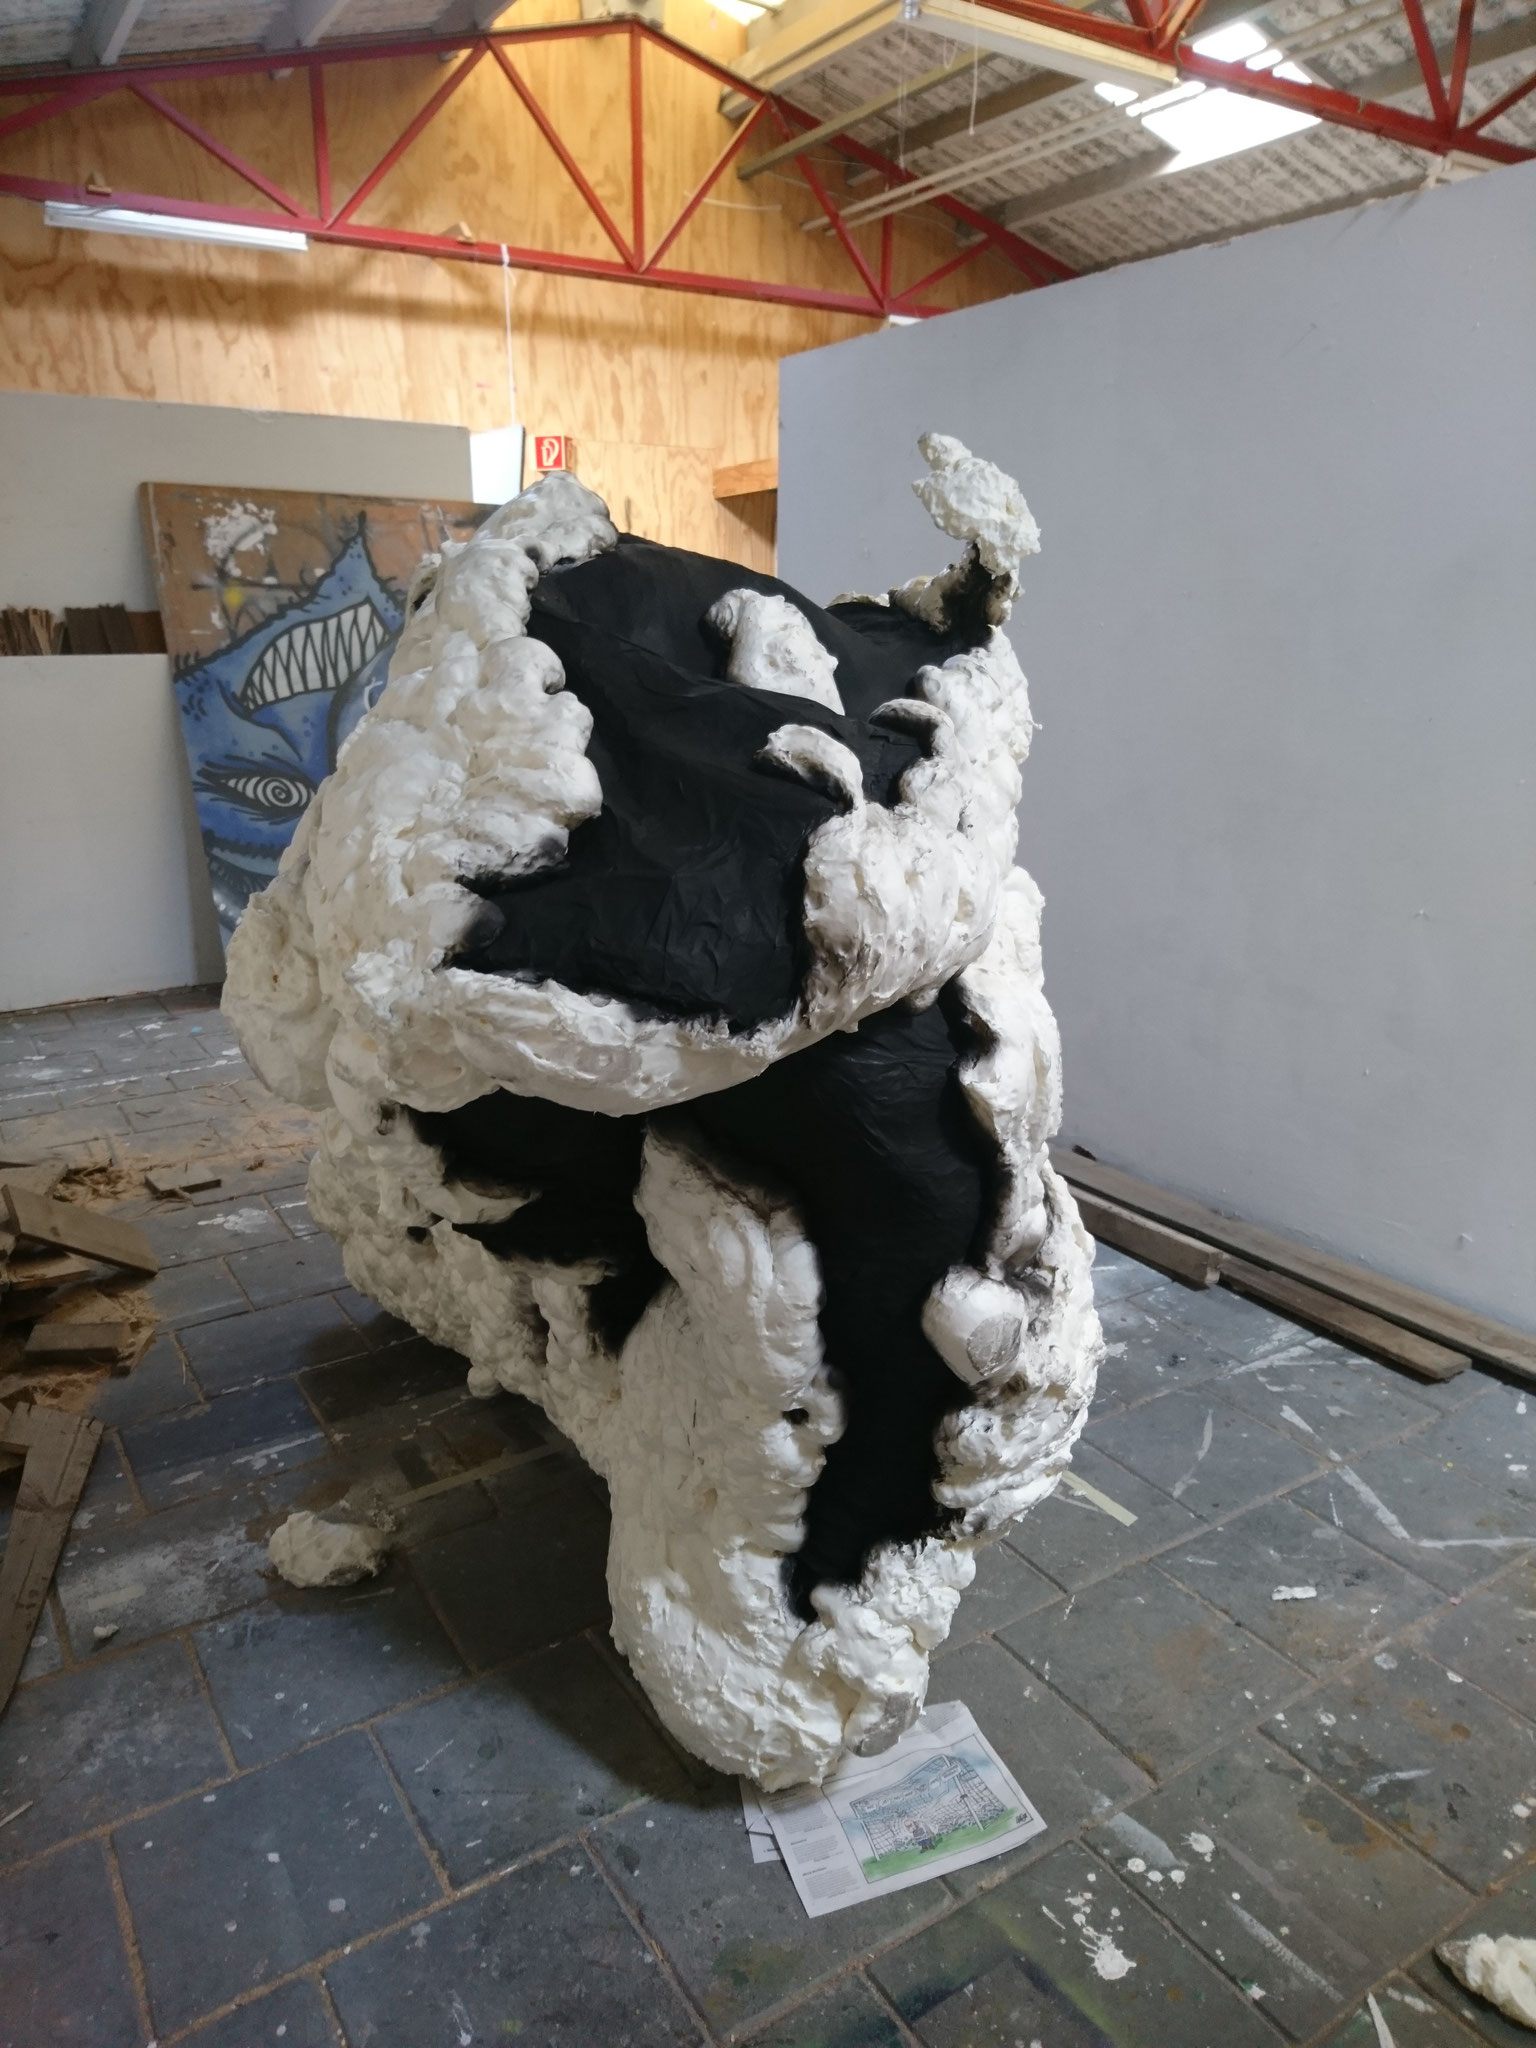 Creating big sculpture for graduation work